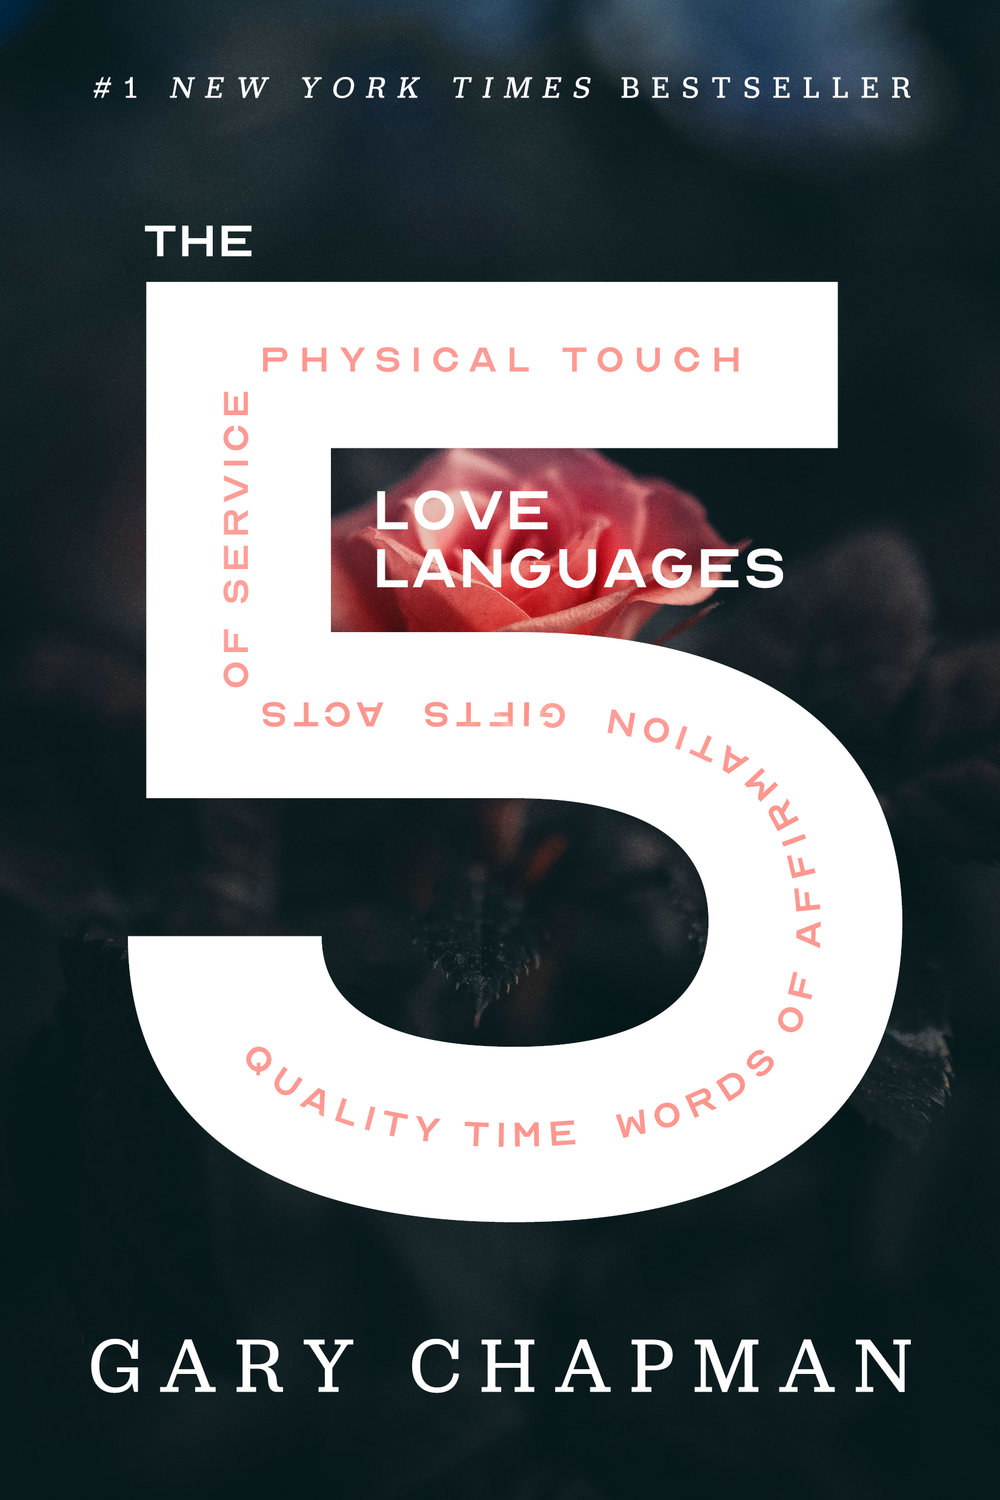 The 5 Love Languages by Gary Chapman Designed by Ben Mautner for One Hour Covers